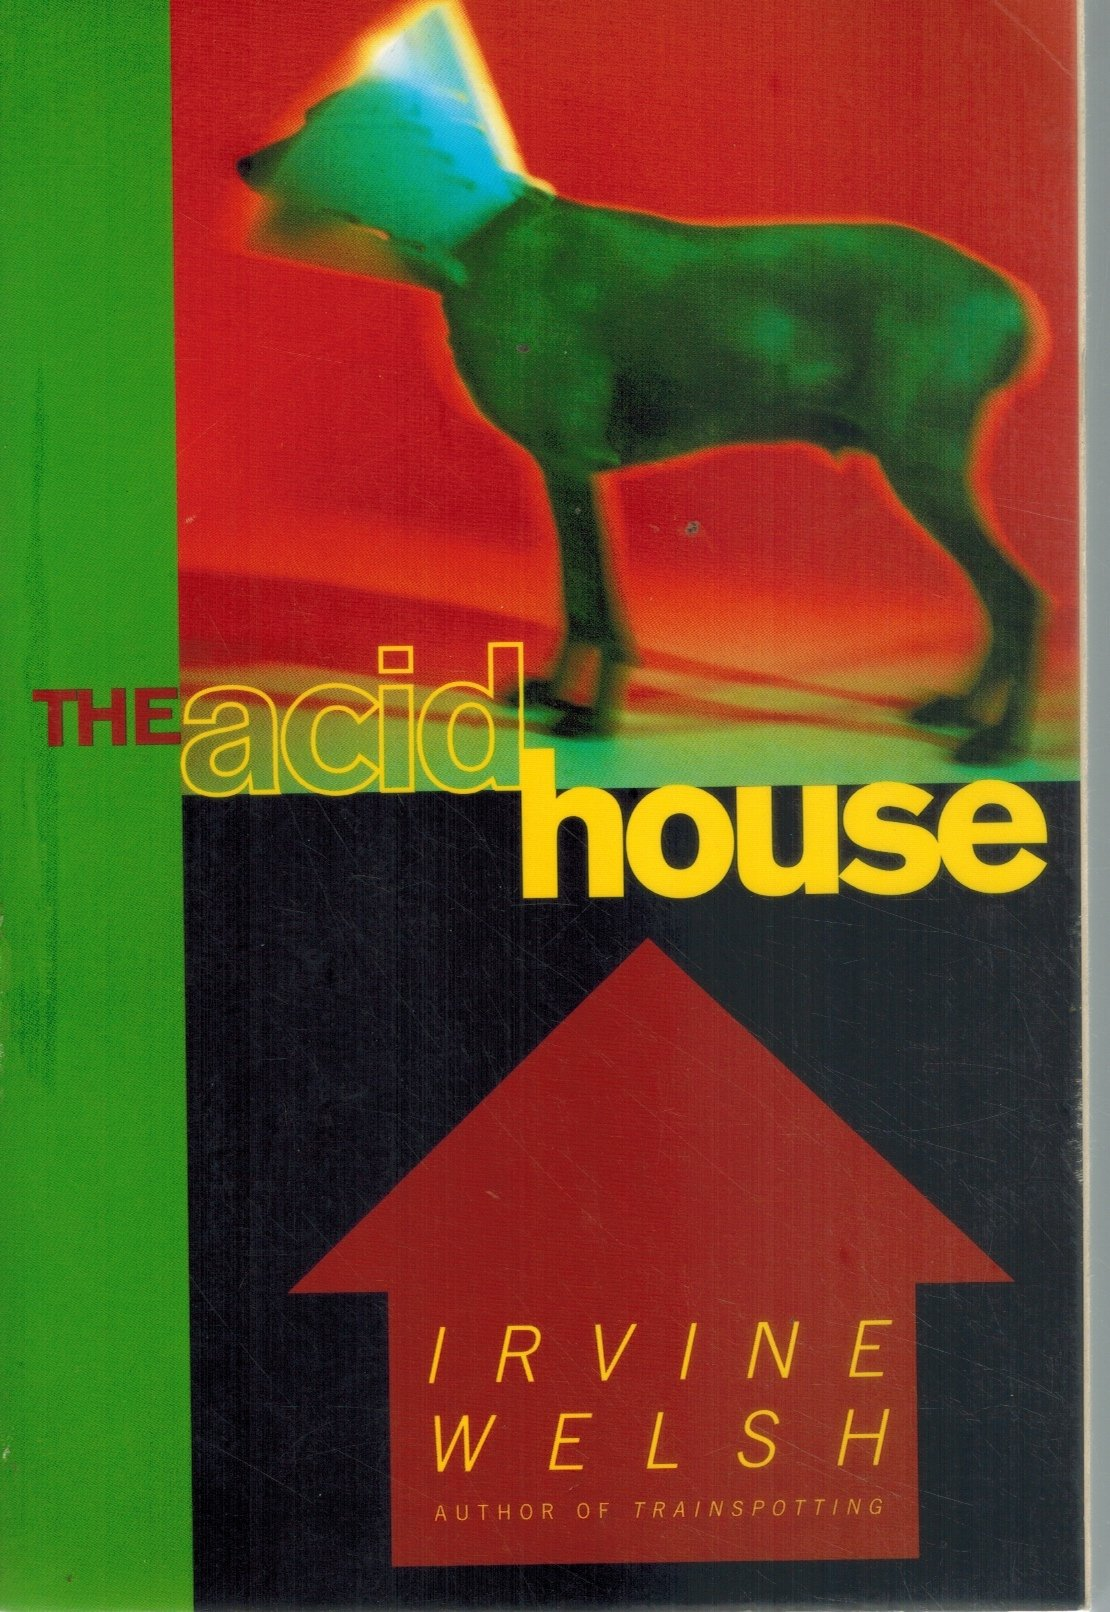 THE ACID HOUSE  by Welsh, Irvine